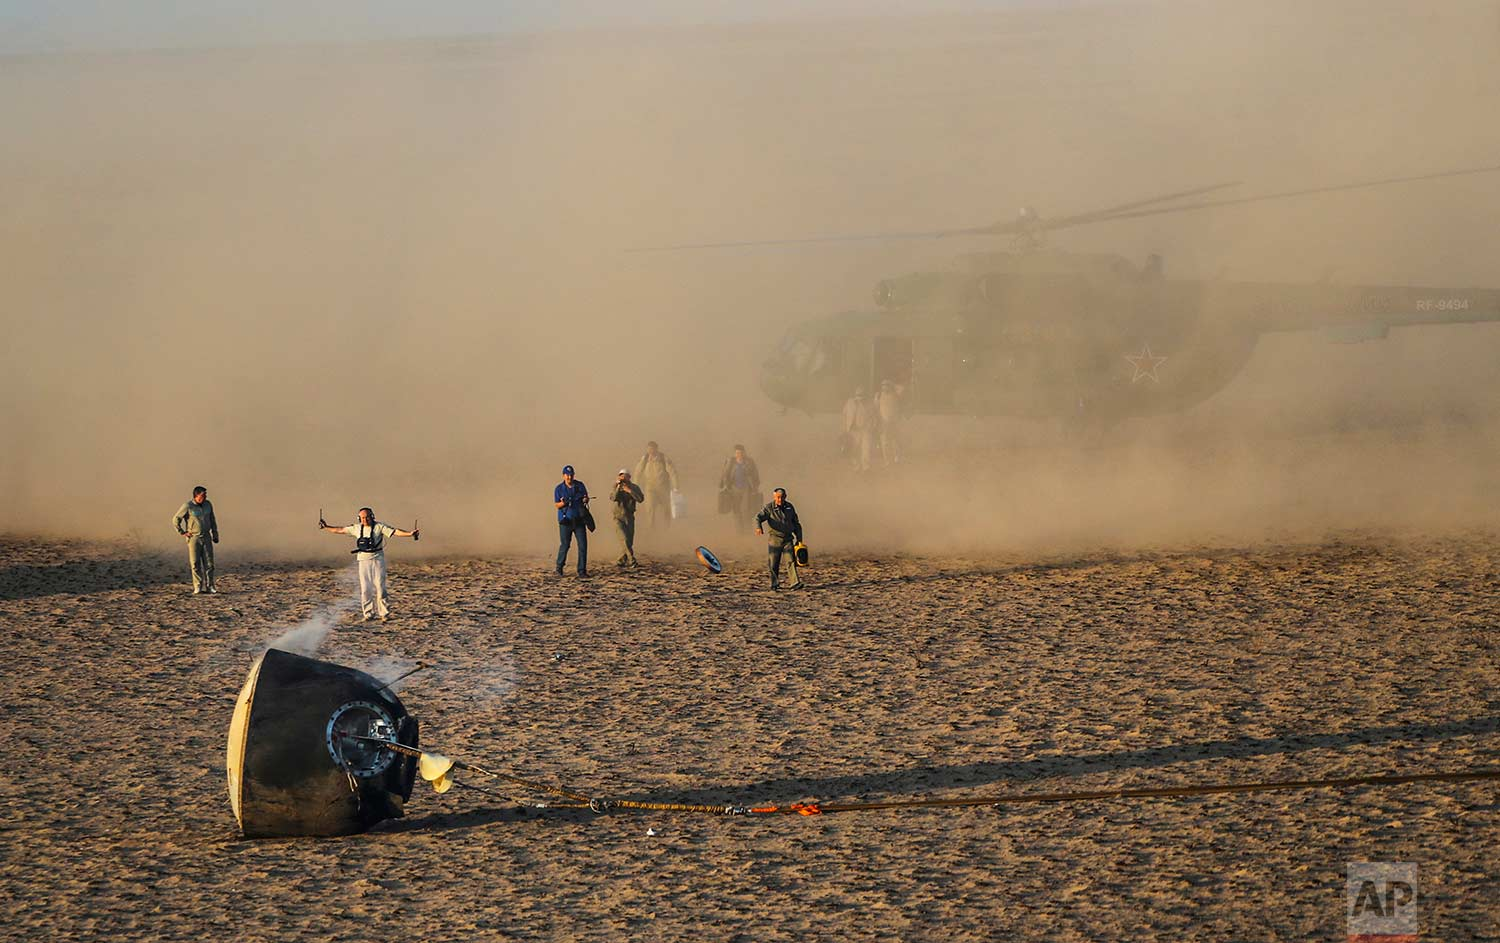 A search and rescue team works on the site of landing of Russian Soyuz MS-04 space capsule in a remote area outside the town of Dzhezkazgan, Kazakhstan, Sunday, Sept. 3, 2017. The Soyuz capsule carrying Astronauts Peggy Whitson and Jack Fischer of NASA and Fyodor Yurchikhin of the Russian space agency Roscosmos safely returned to Earth in the Kazakh steppe. (Sergei Ilnitsky/Pool via AP)